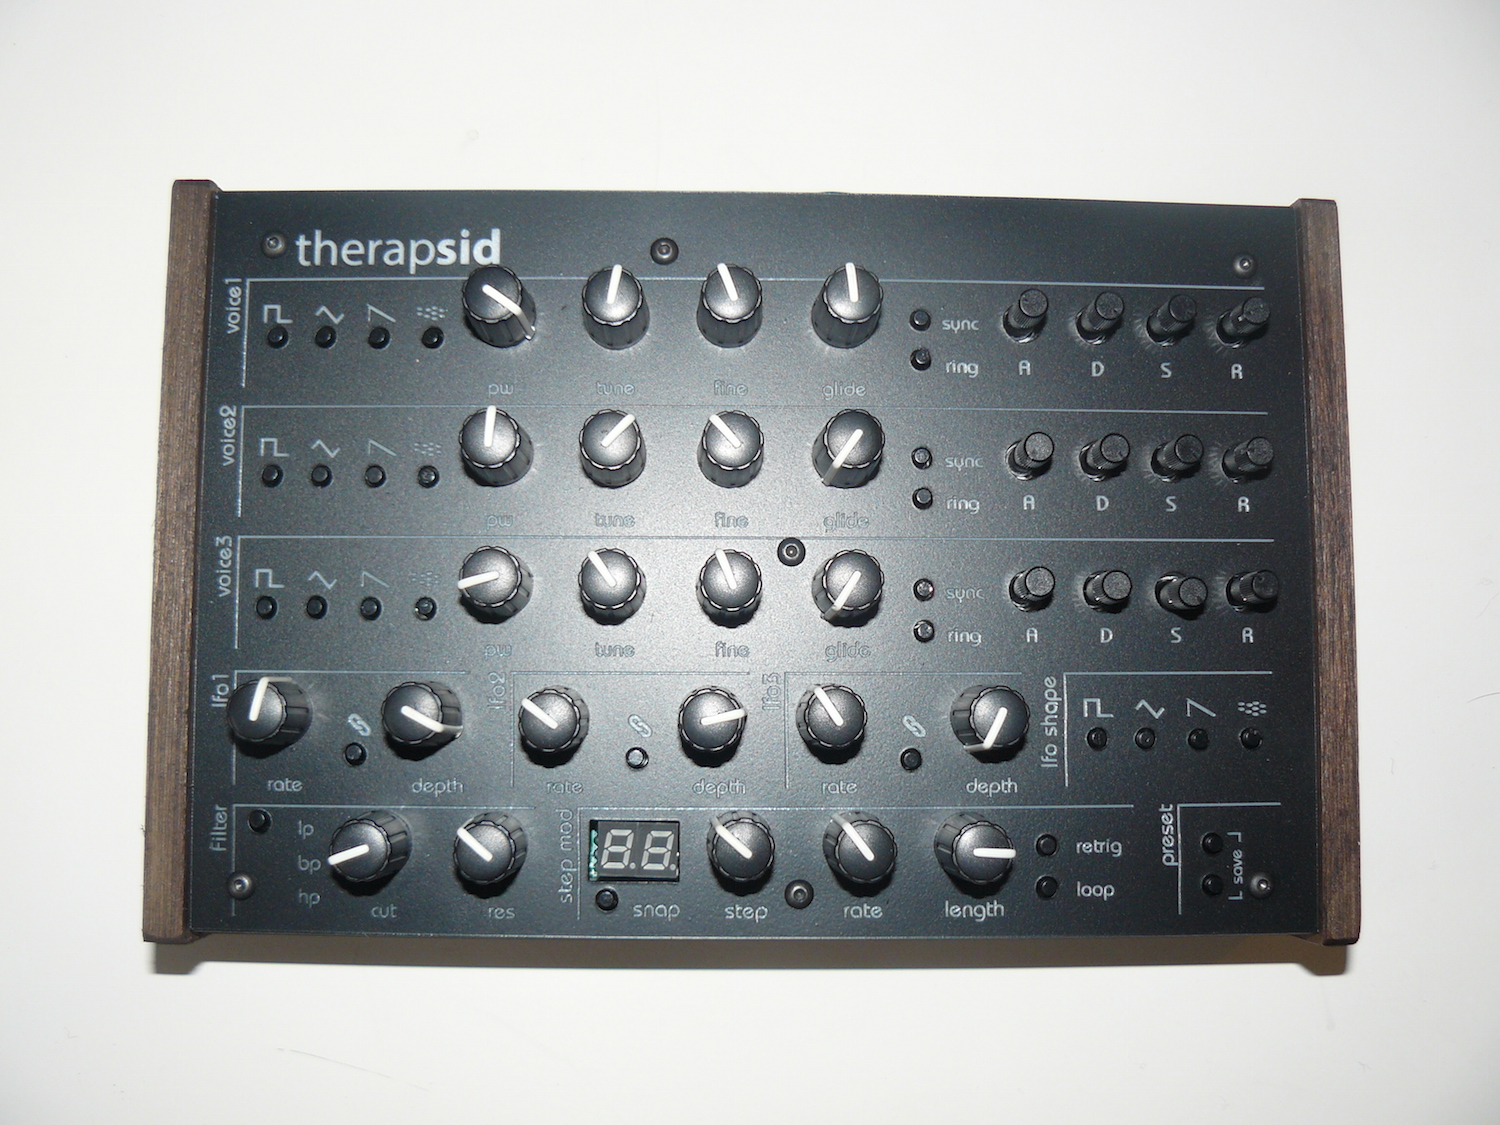 twisted-electrons-therapsid-1030462.jpg